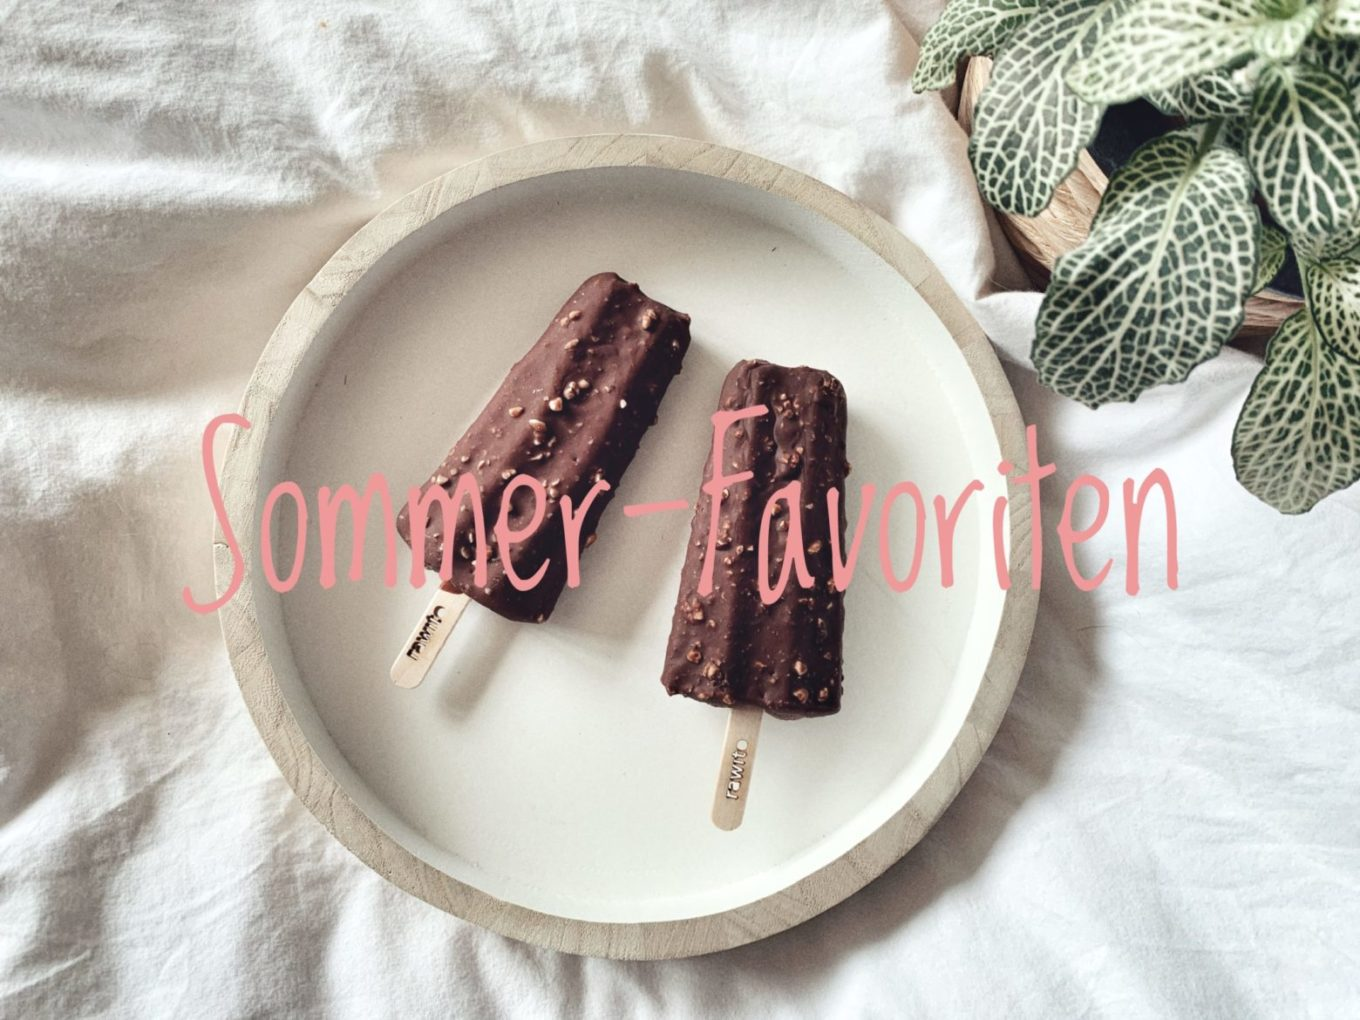 Sommer Favoriten: Zero Waste Eis, glowy Make Up & Fair Fashion